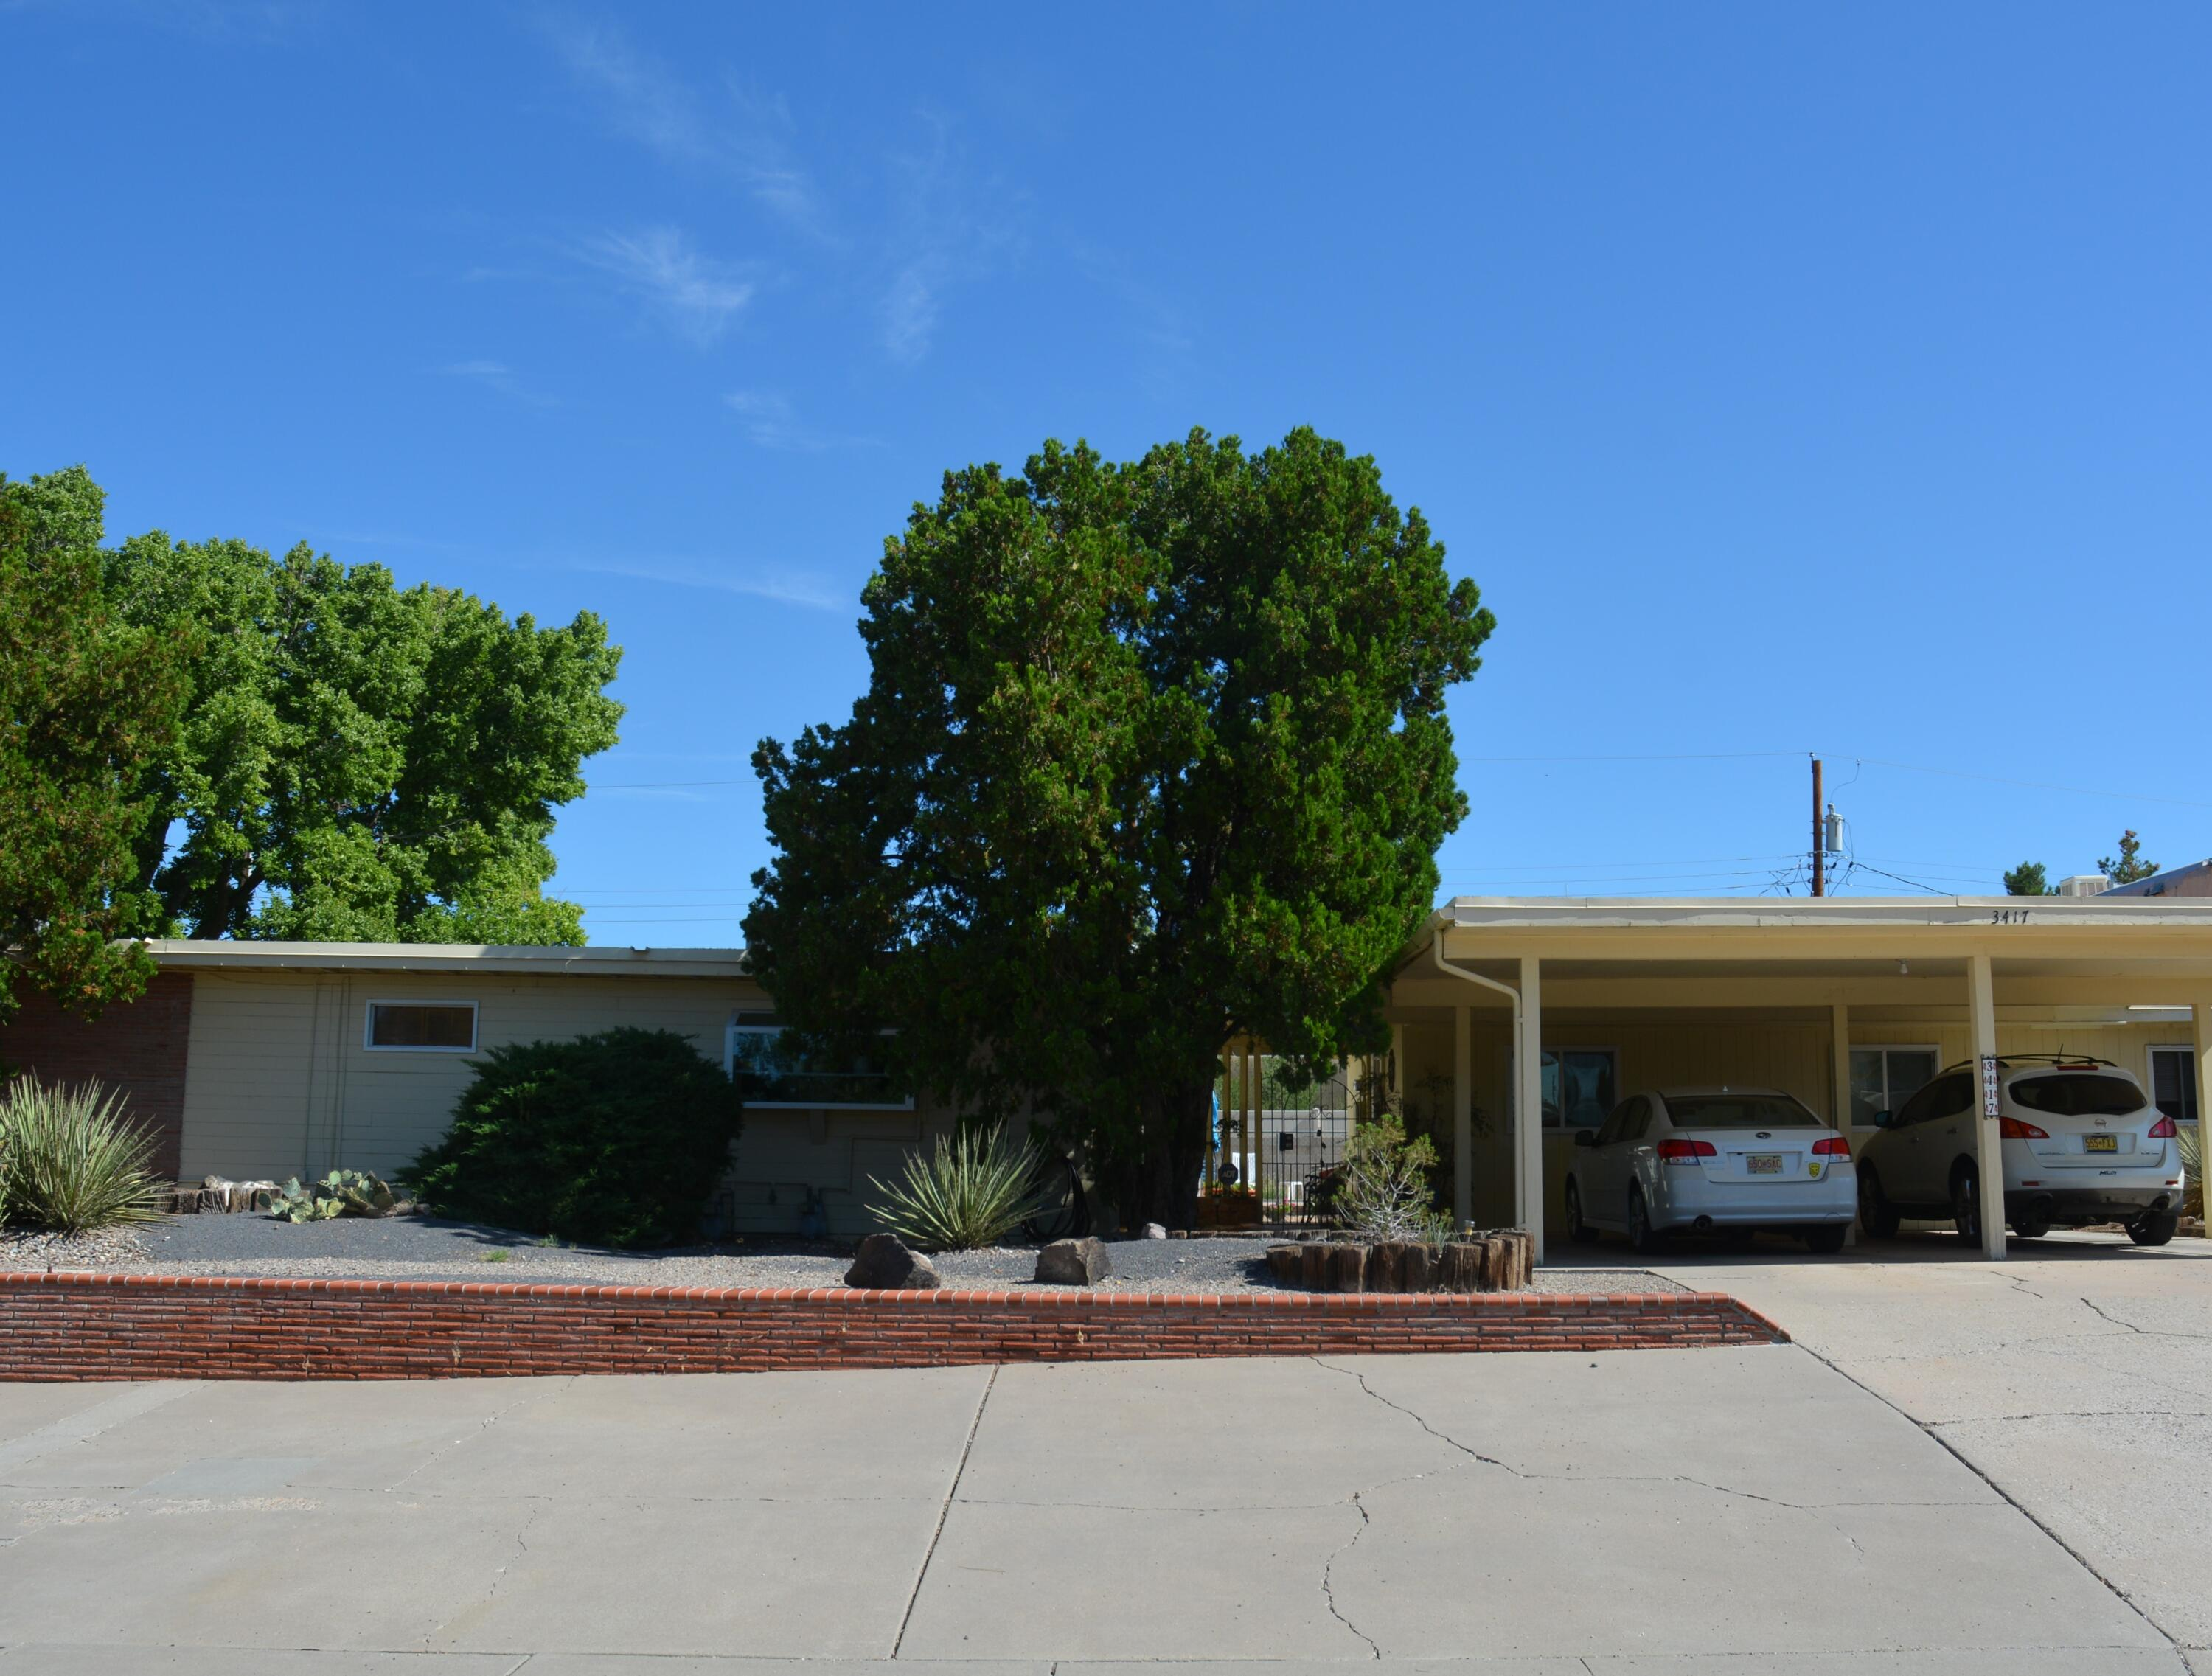 Looking for a Mid Century modern home, on .46 acre, with pool that's only 1 mile from Nob Hill shopping center? Well come see 3417 Smith.  Main house is 3 bedroom 2 bath AND Home comes with 800SF  pool house that  would make a great home office or  casita! Main house has newer 97 efficiency rated furnace. Park like back yard has tons of room for any future home expansion if desired. Close to Nob Hill shopping and dining, Puerto Del Sol golf course, Bandelier Elementary, Burton park, Hyder park & Micheal Thomas for your morning coffee. Don't miss seeing 3417 Smith.